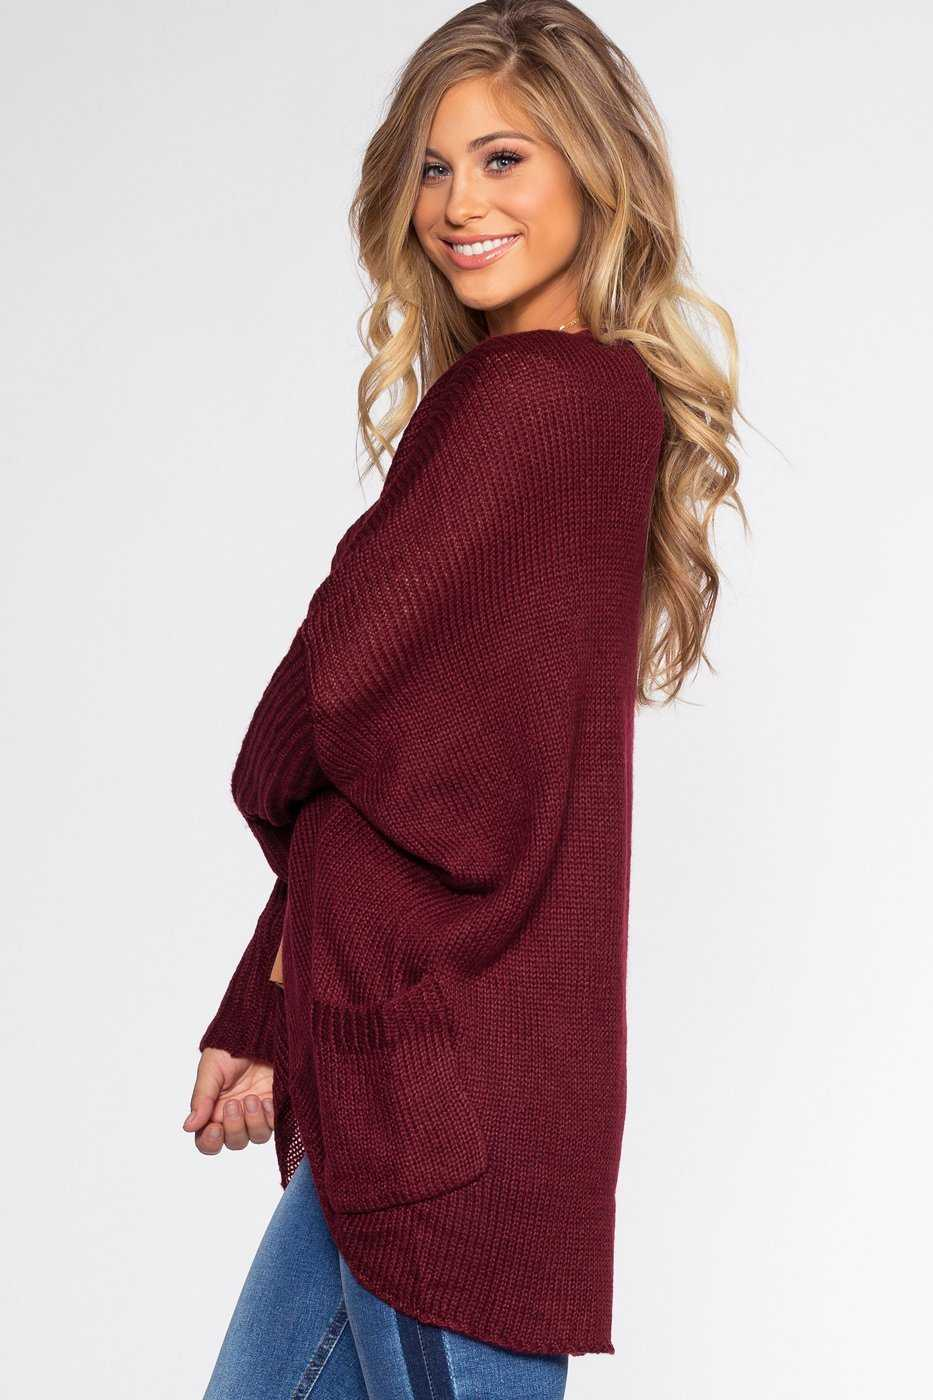 Cardigans - Sunset Vista Cardigan - Burgundy